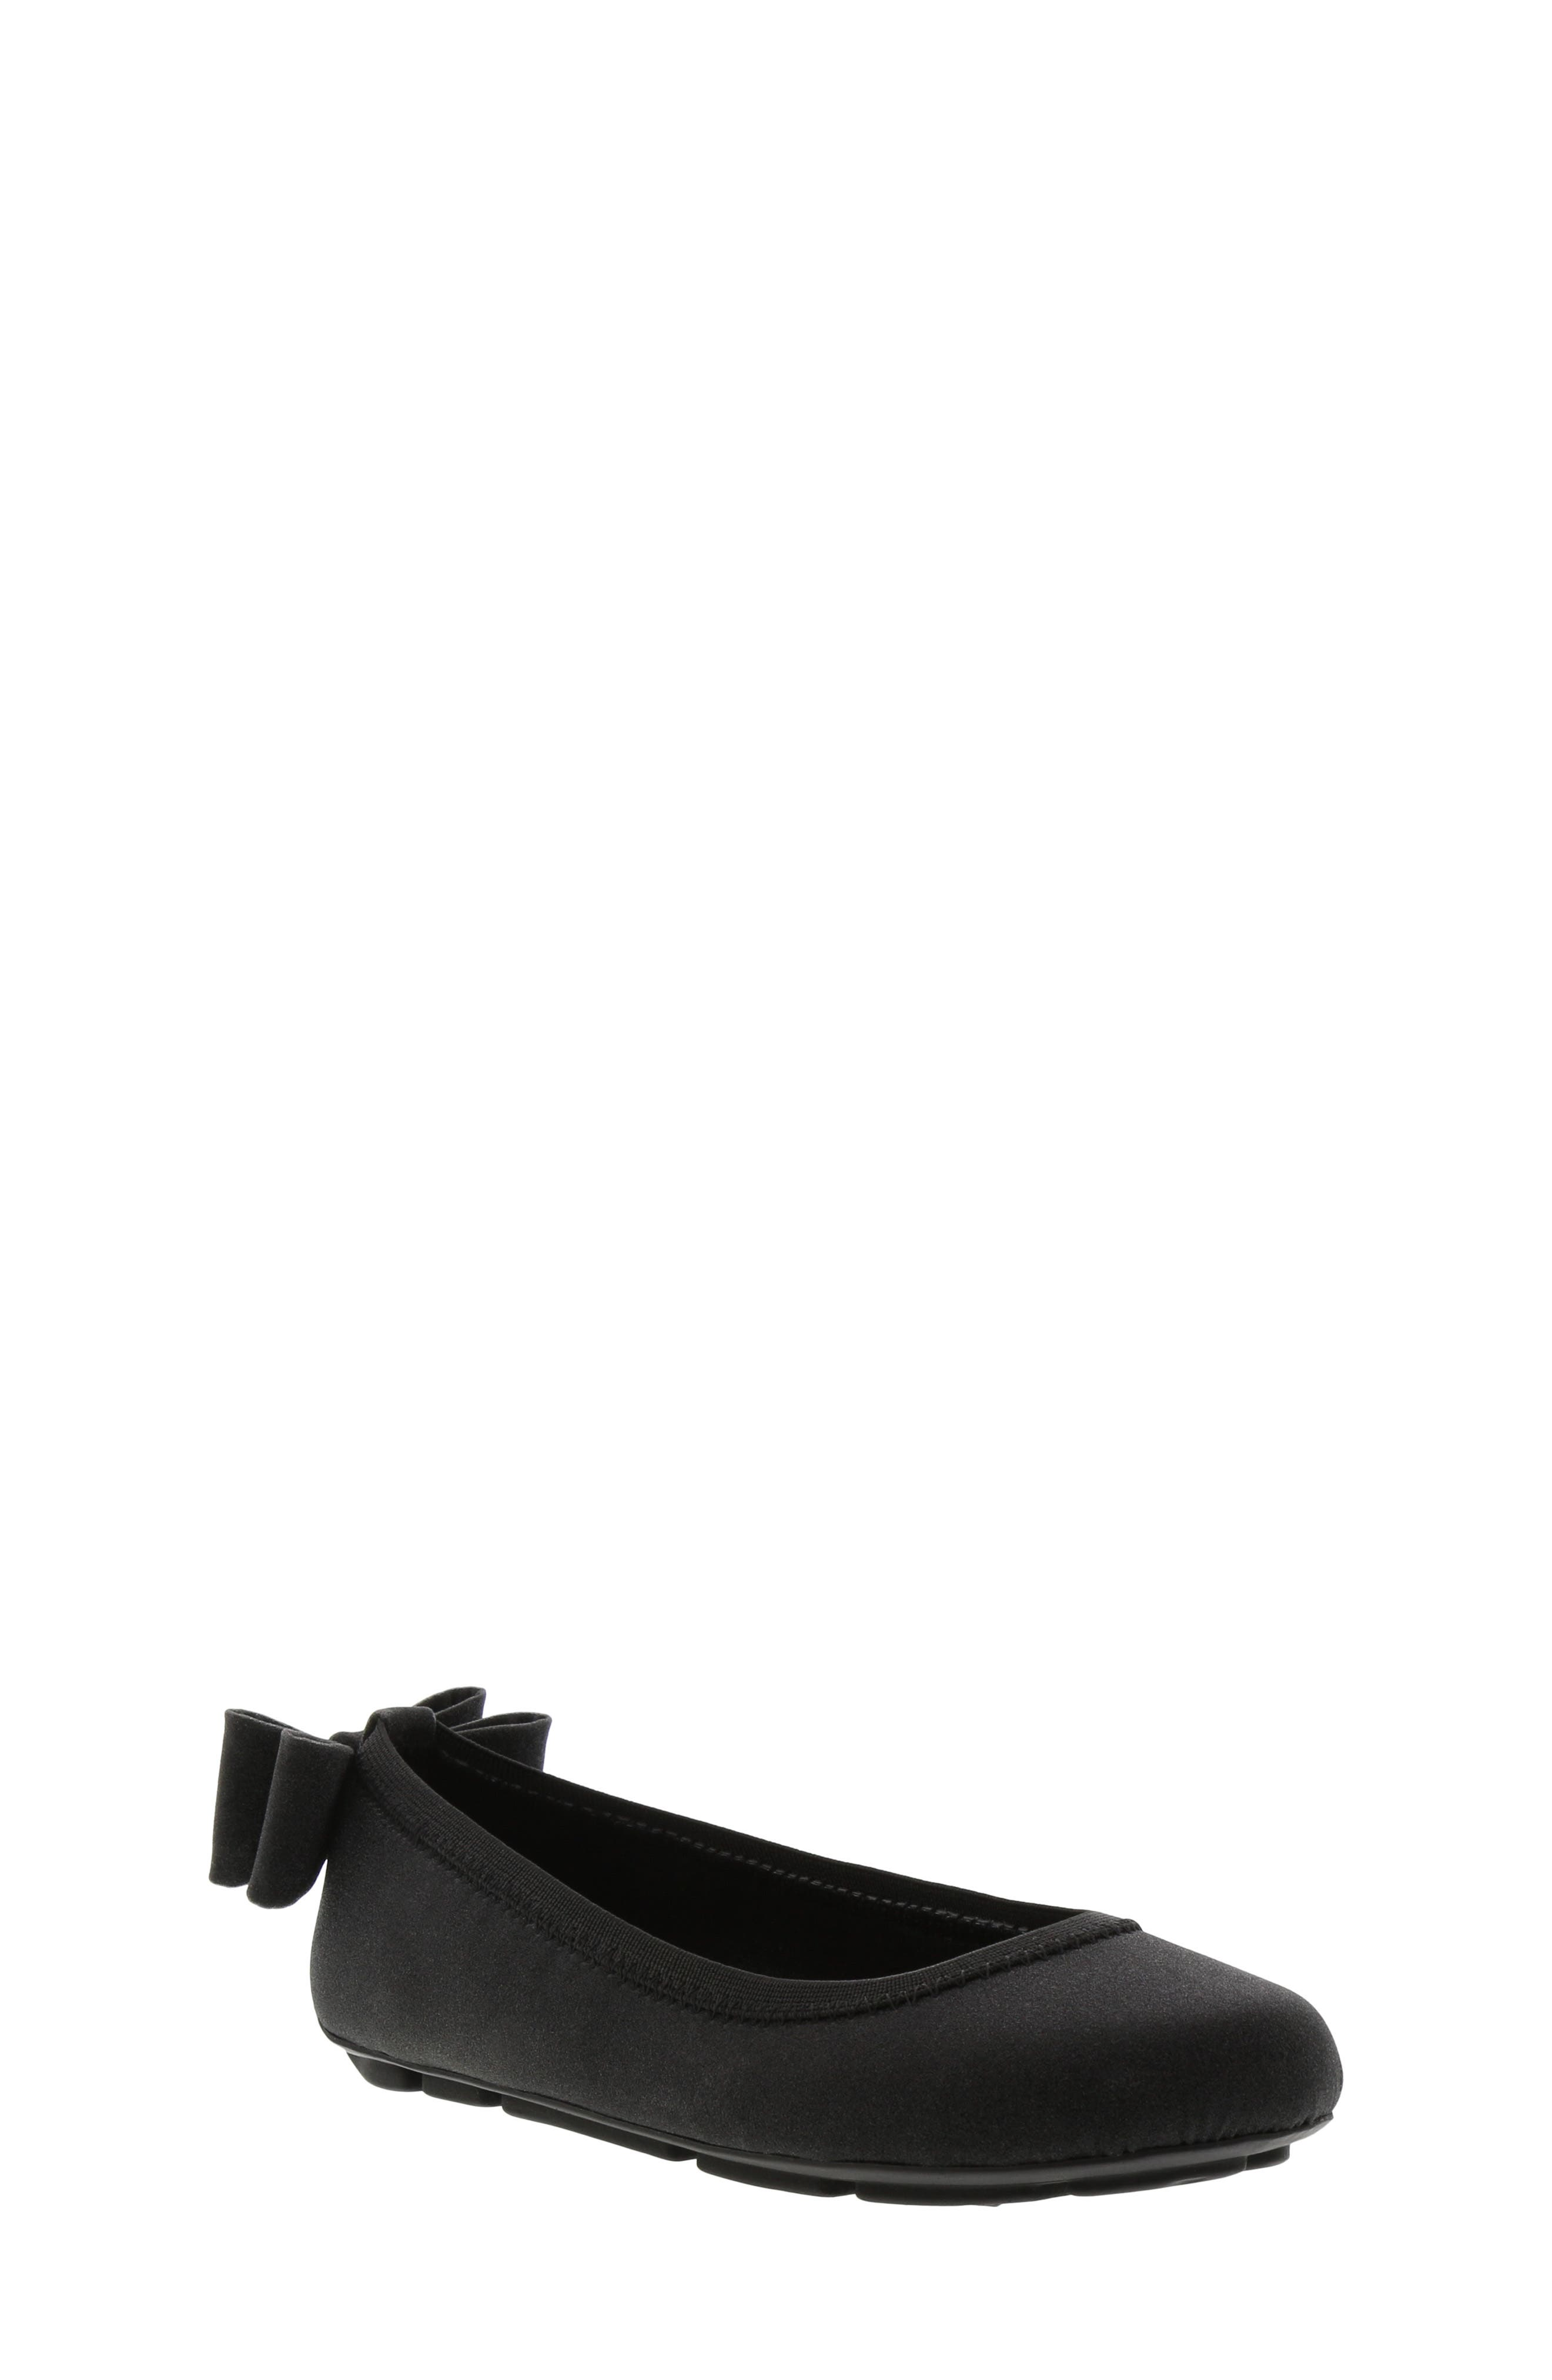 MICHAEL MICHAEL KORS Rover Ellie Flat, Main, color, BLACK